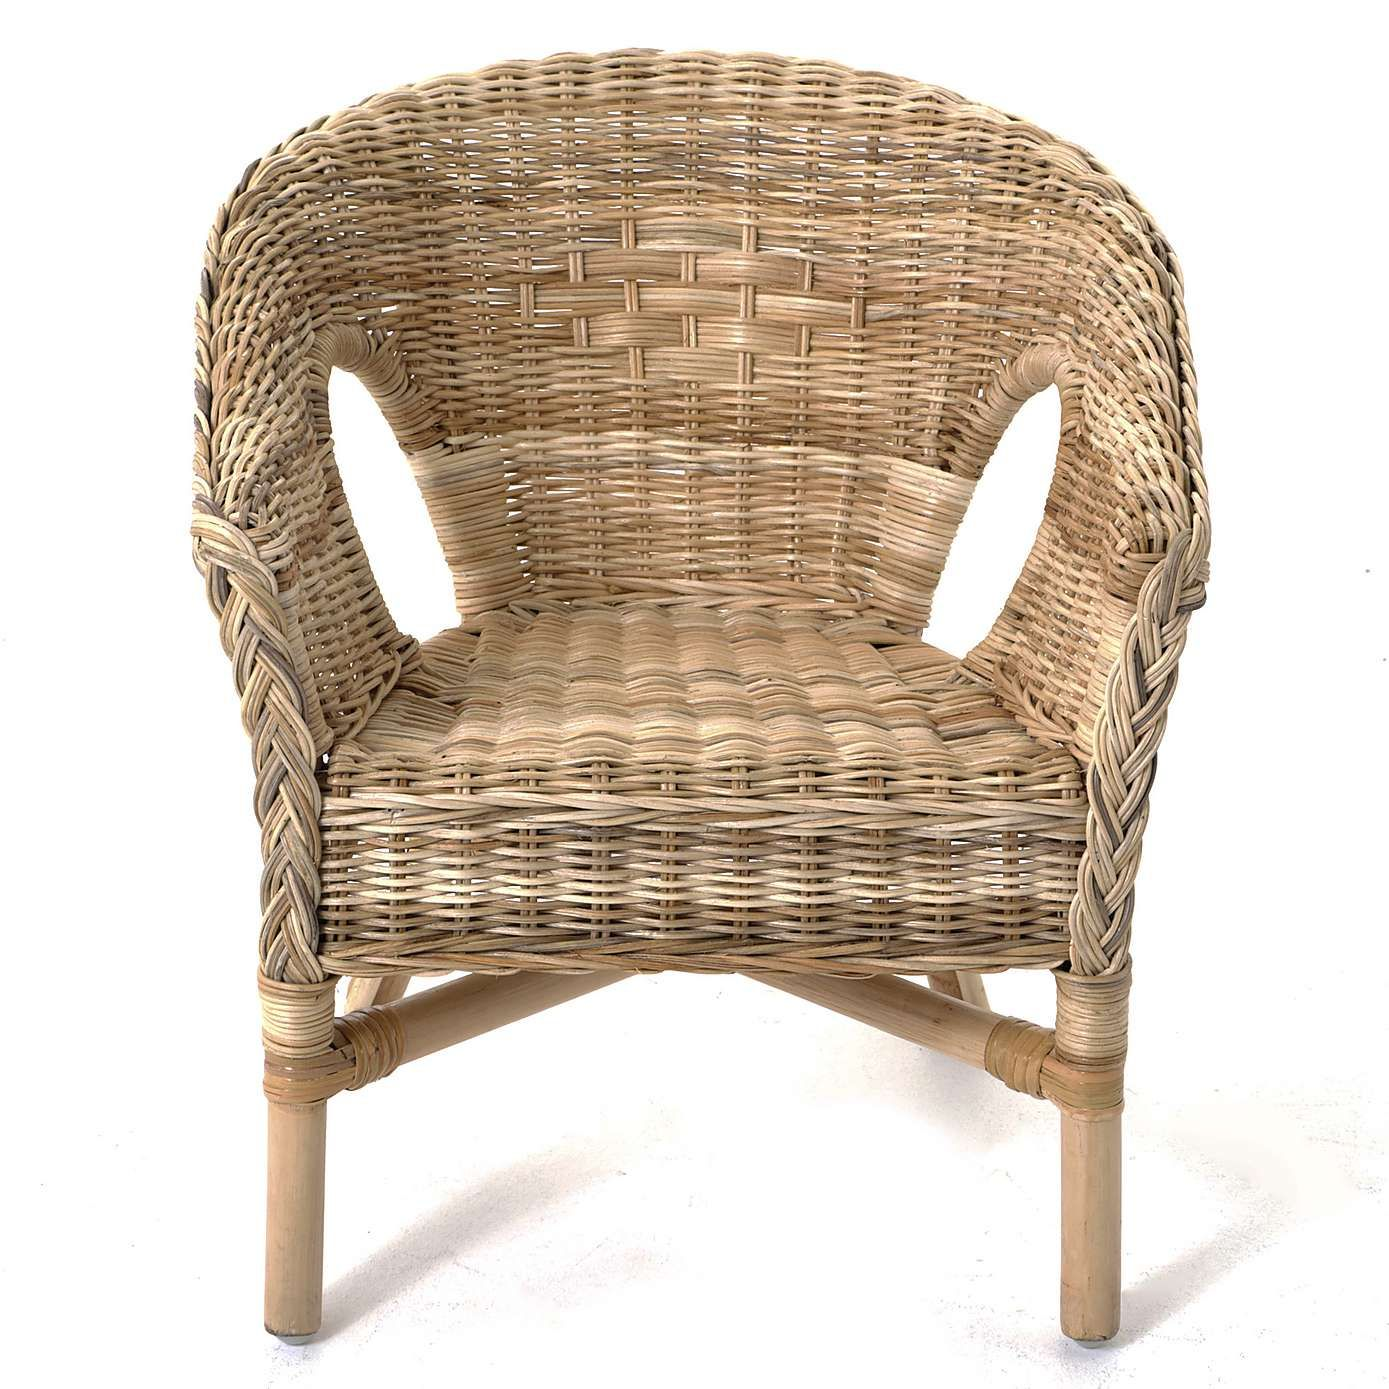 Kid Cafe Furniture: Kids Java Wicker Chair - Brown